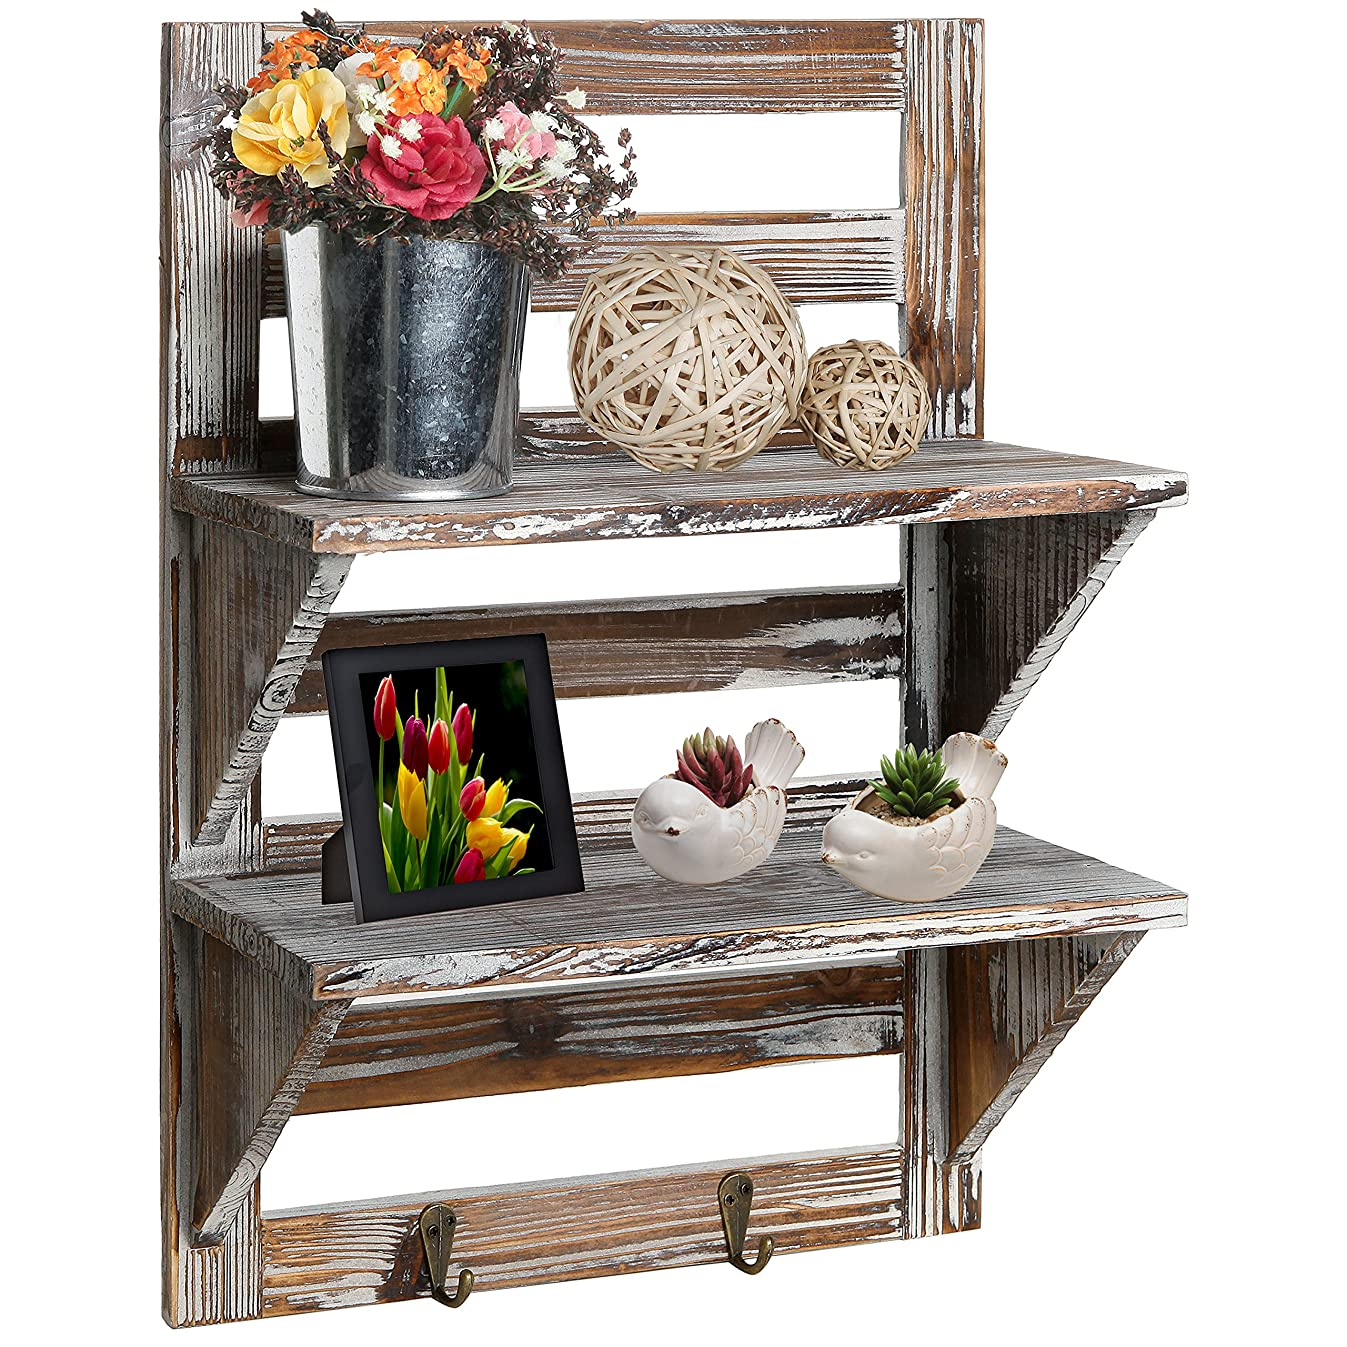 MyGift Rustic Wood Wall Mounted Organizer Shelves w/ 2 Hooks, 2-Tier Storage Rack, Brown